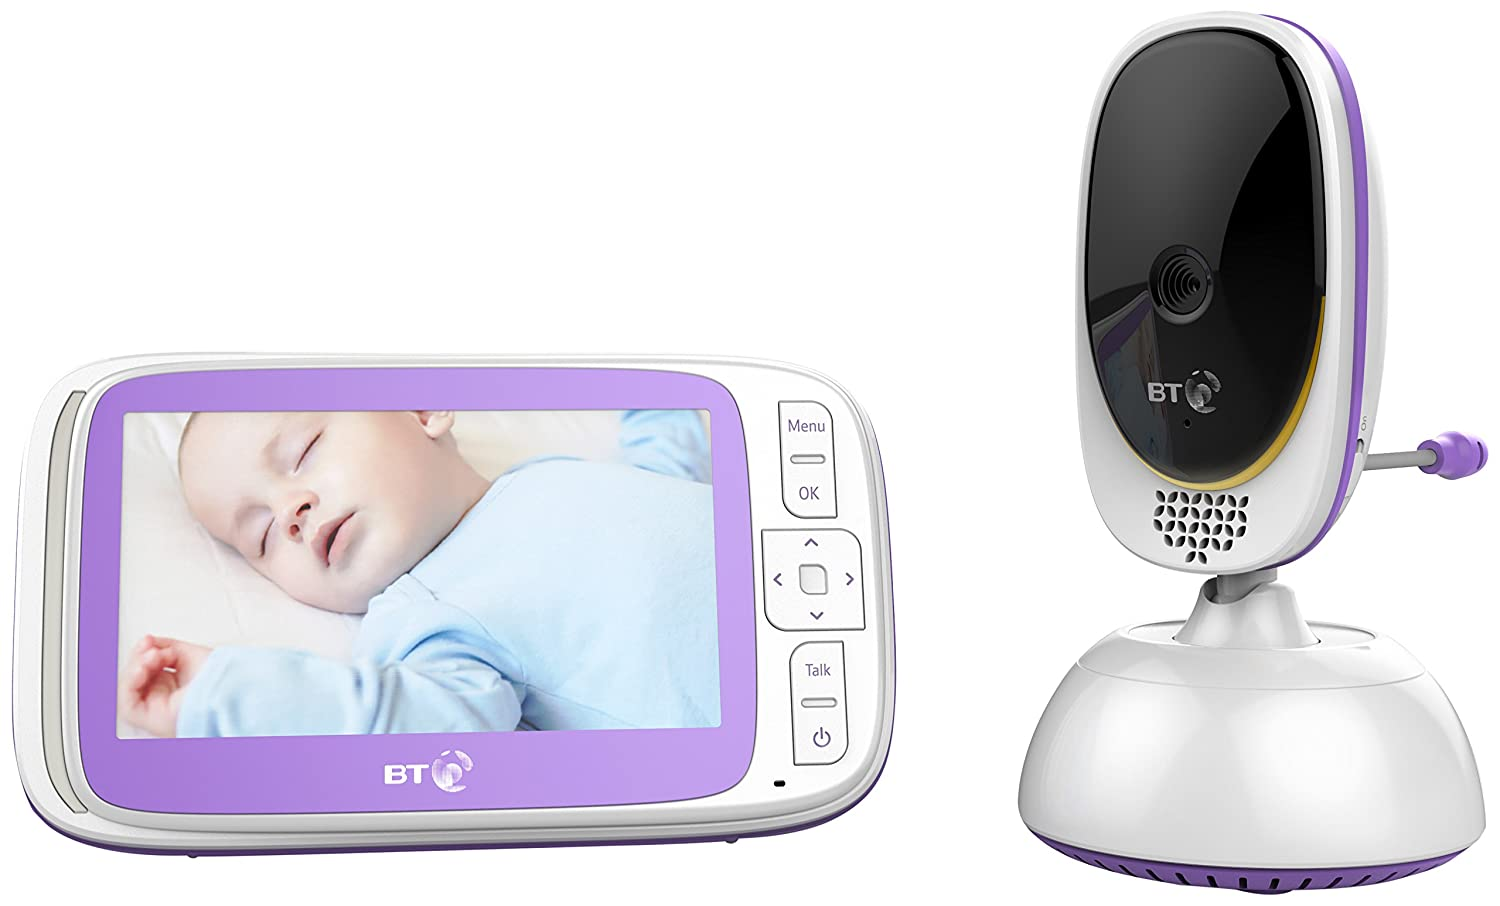 Bt 6000 Video Baby Monitor With Remote Control Facility Pan & Tilt